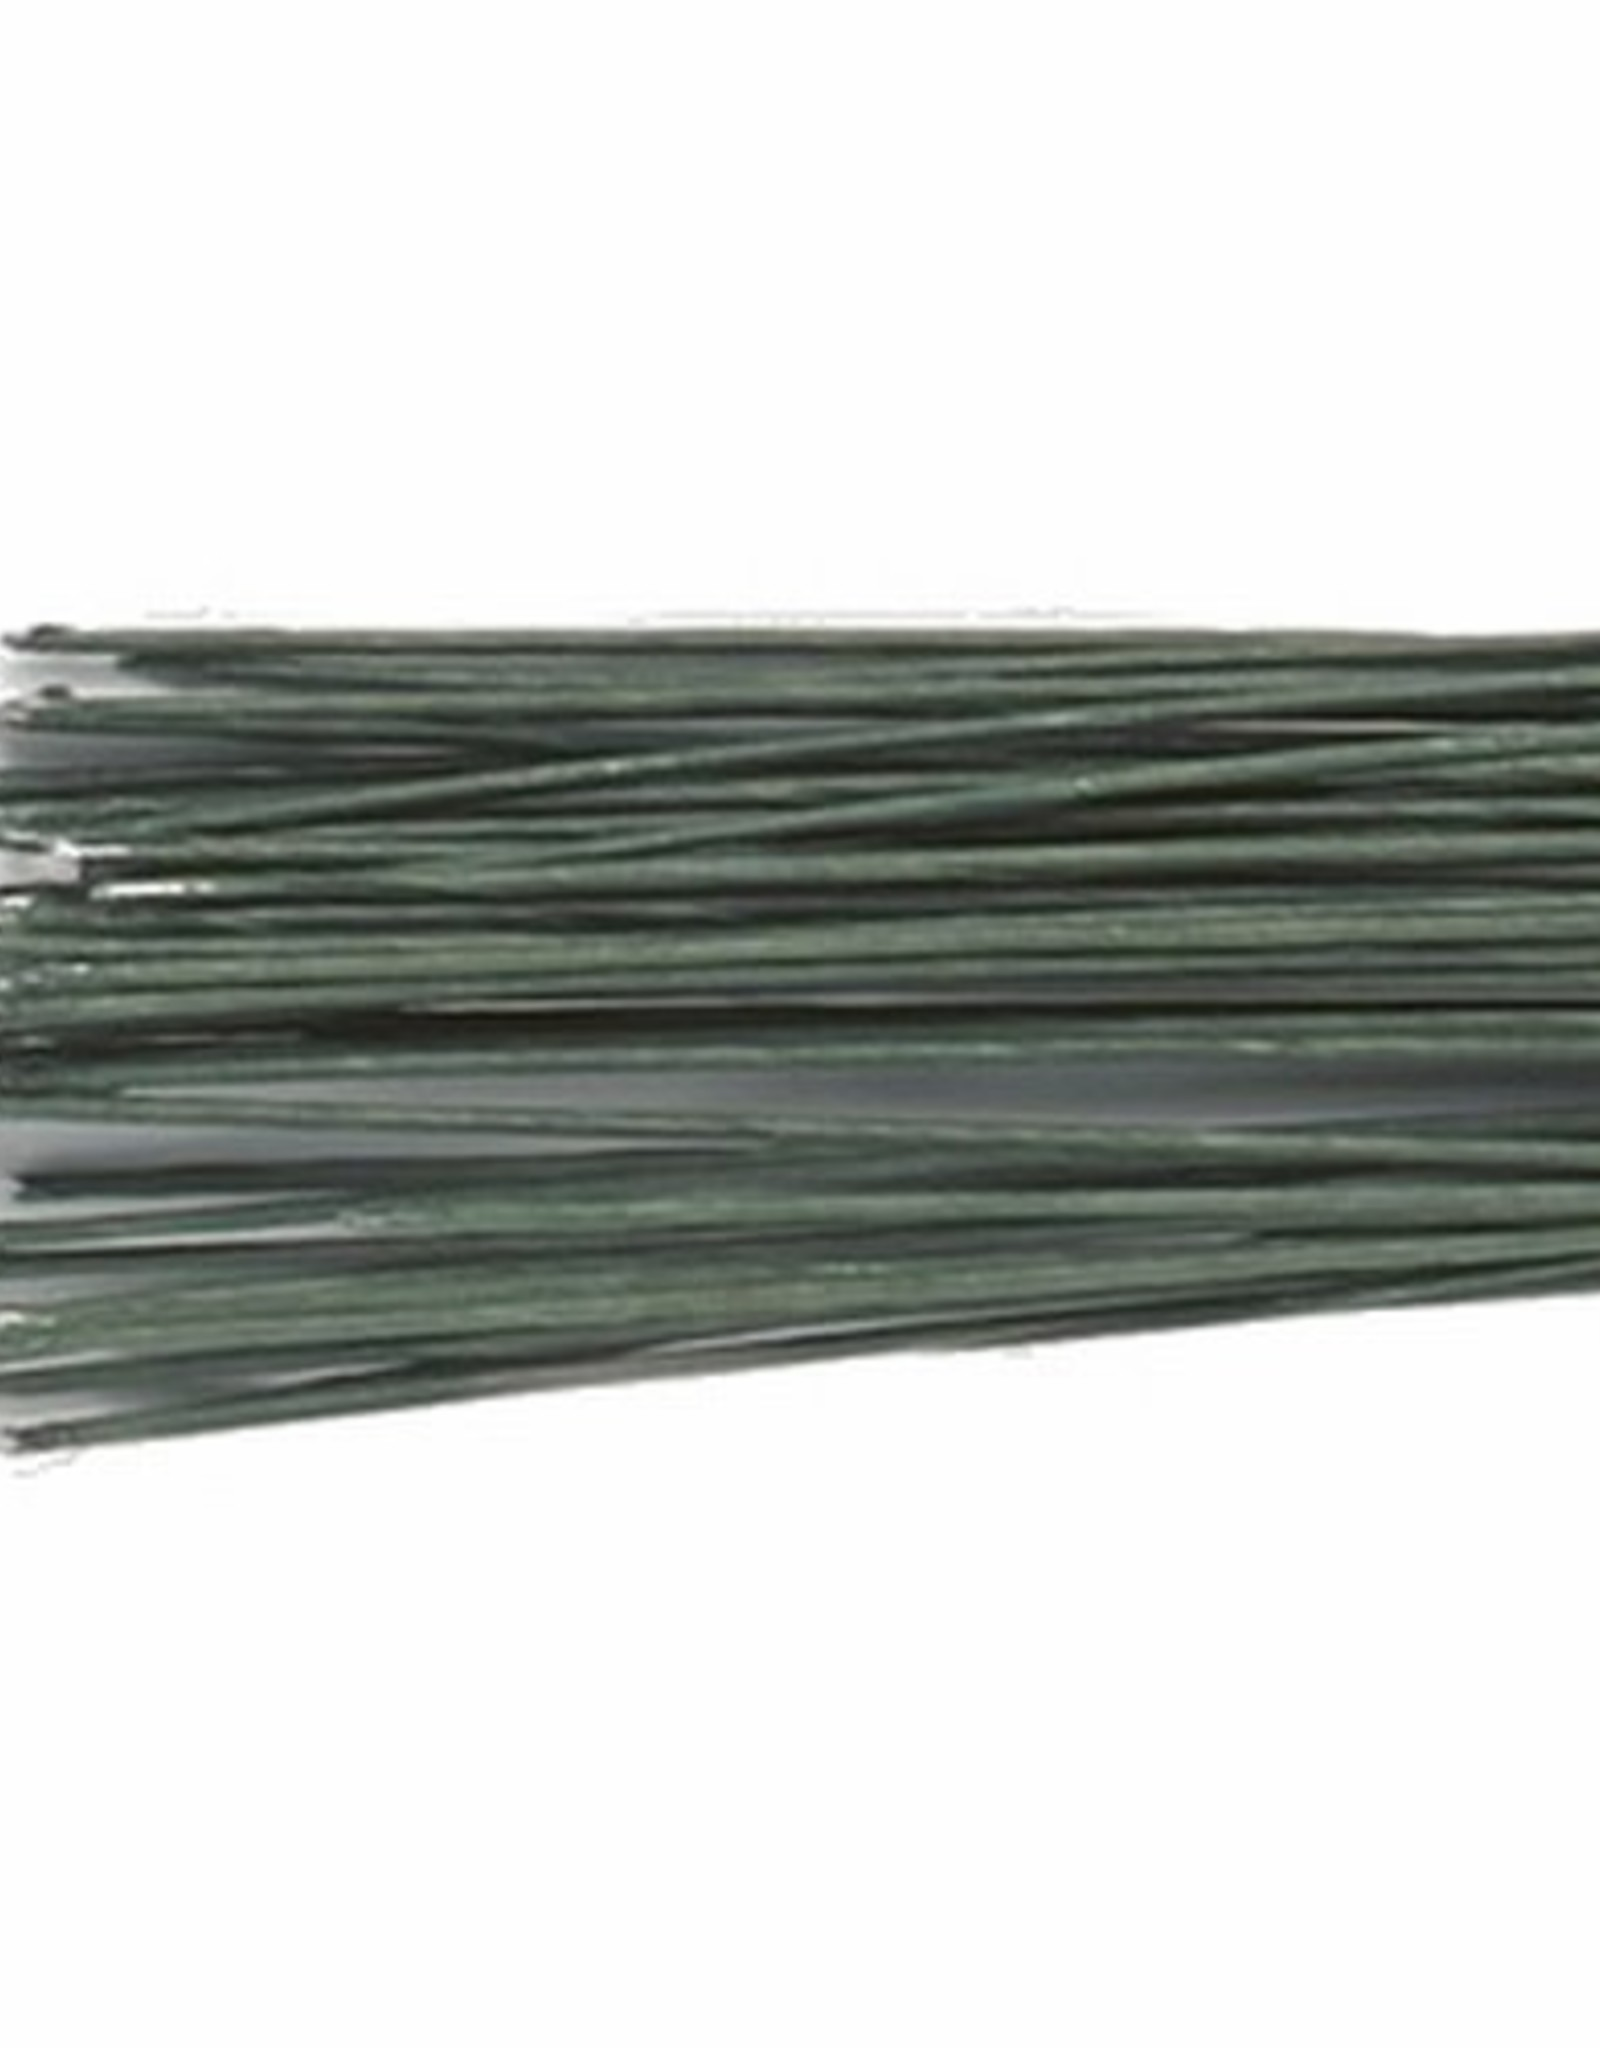 Culpitt Culpitt Floral Wire Dark Green set/20 -20 gauge-